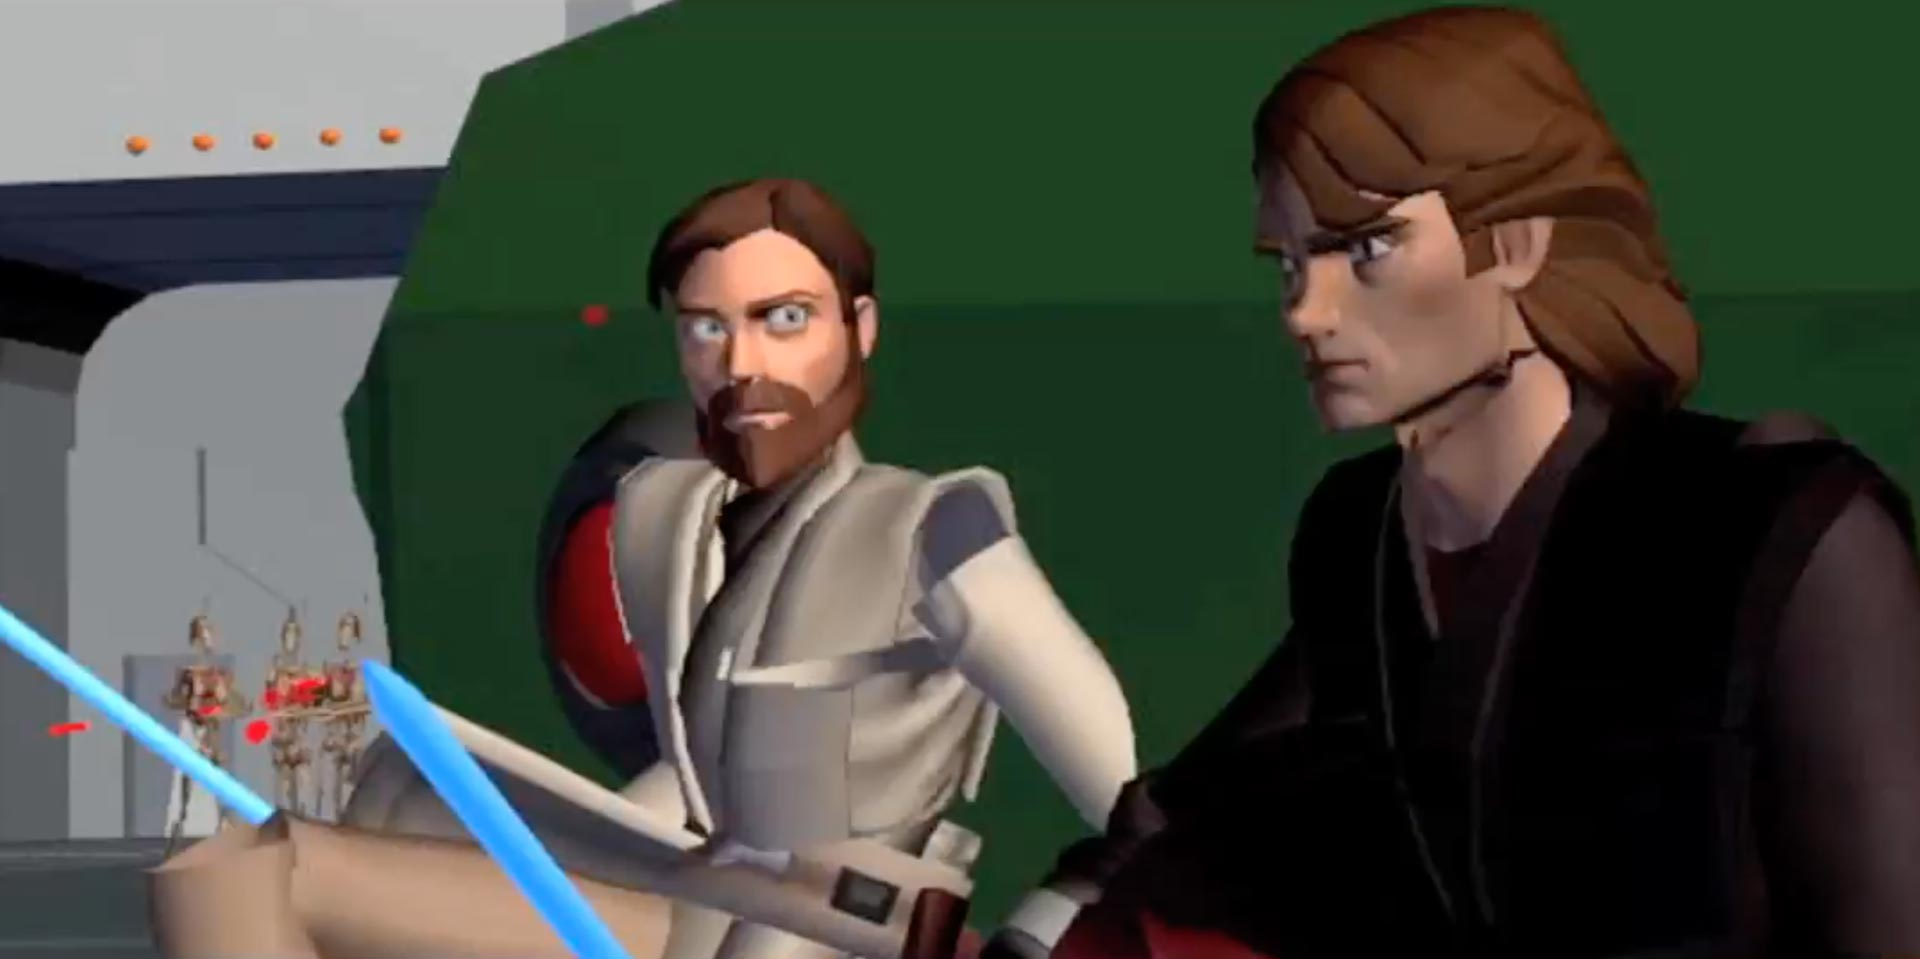 Obi-Wan and Anakin